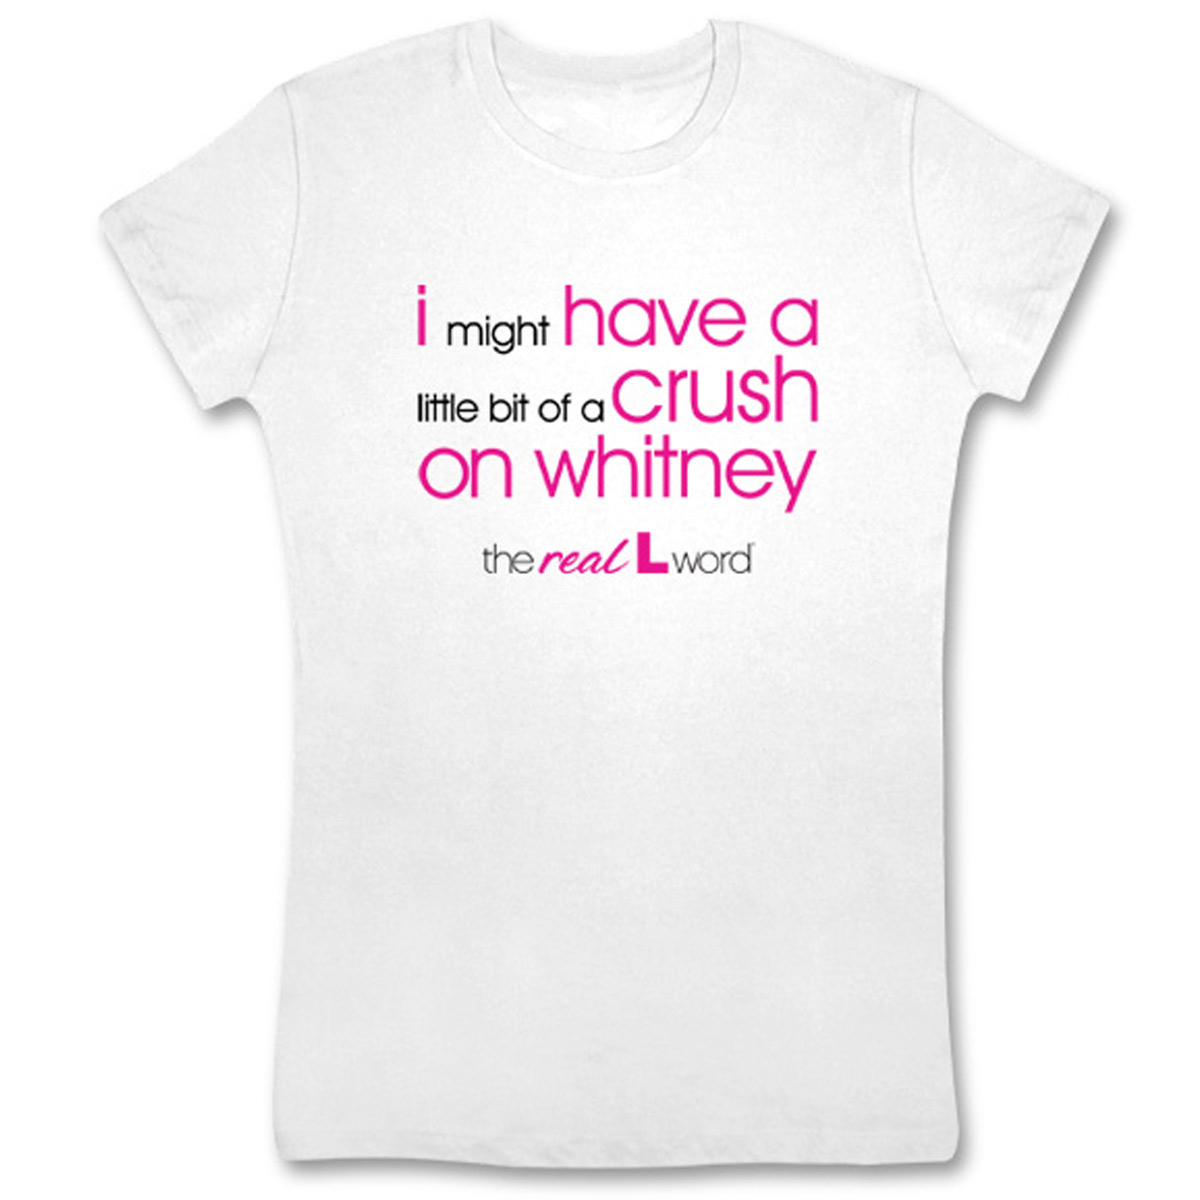 The Real L Word Crush on Whitney Women's T-Shirt